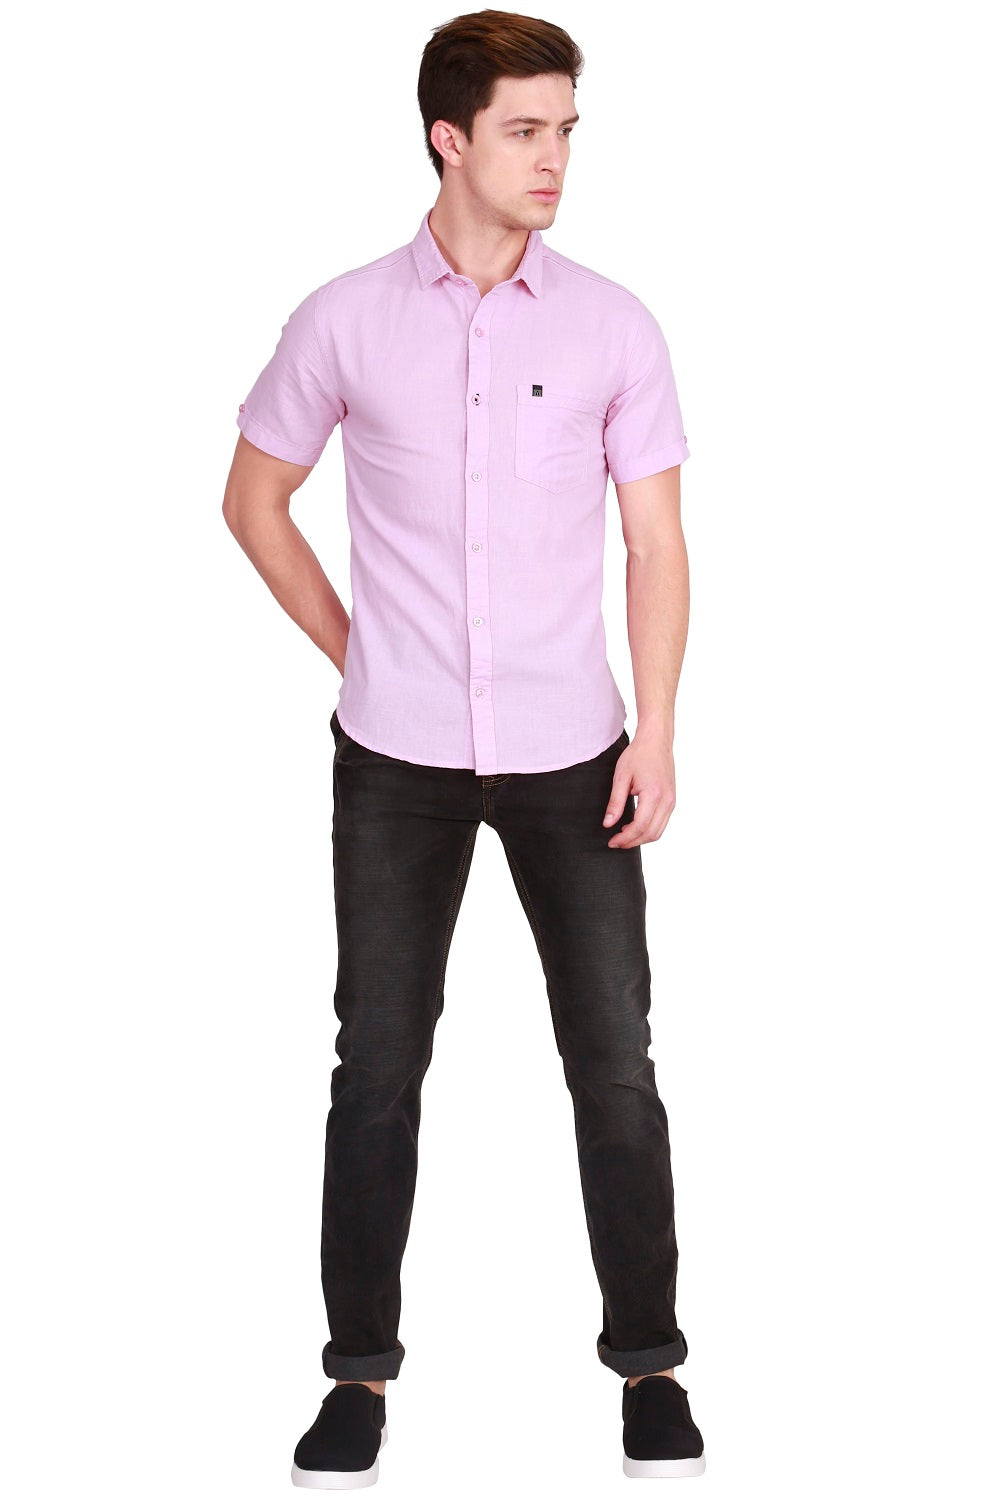 IMYOUNG Men's Solid Pink Cotton Linen Casual Shirt